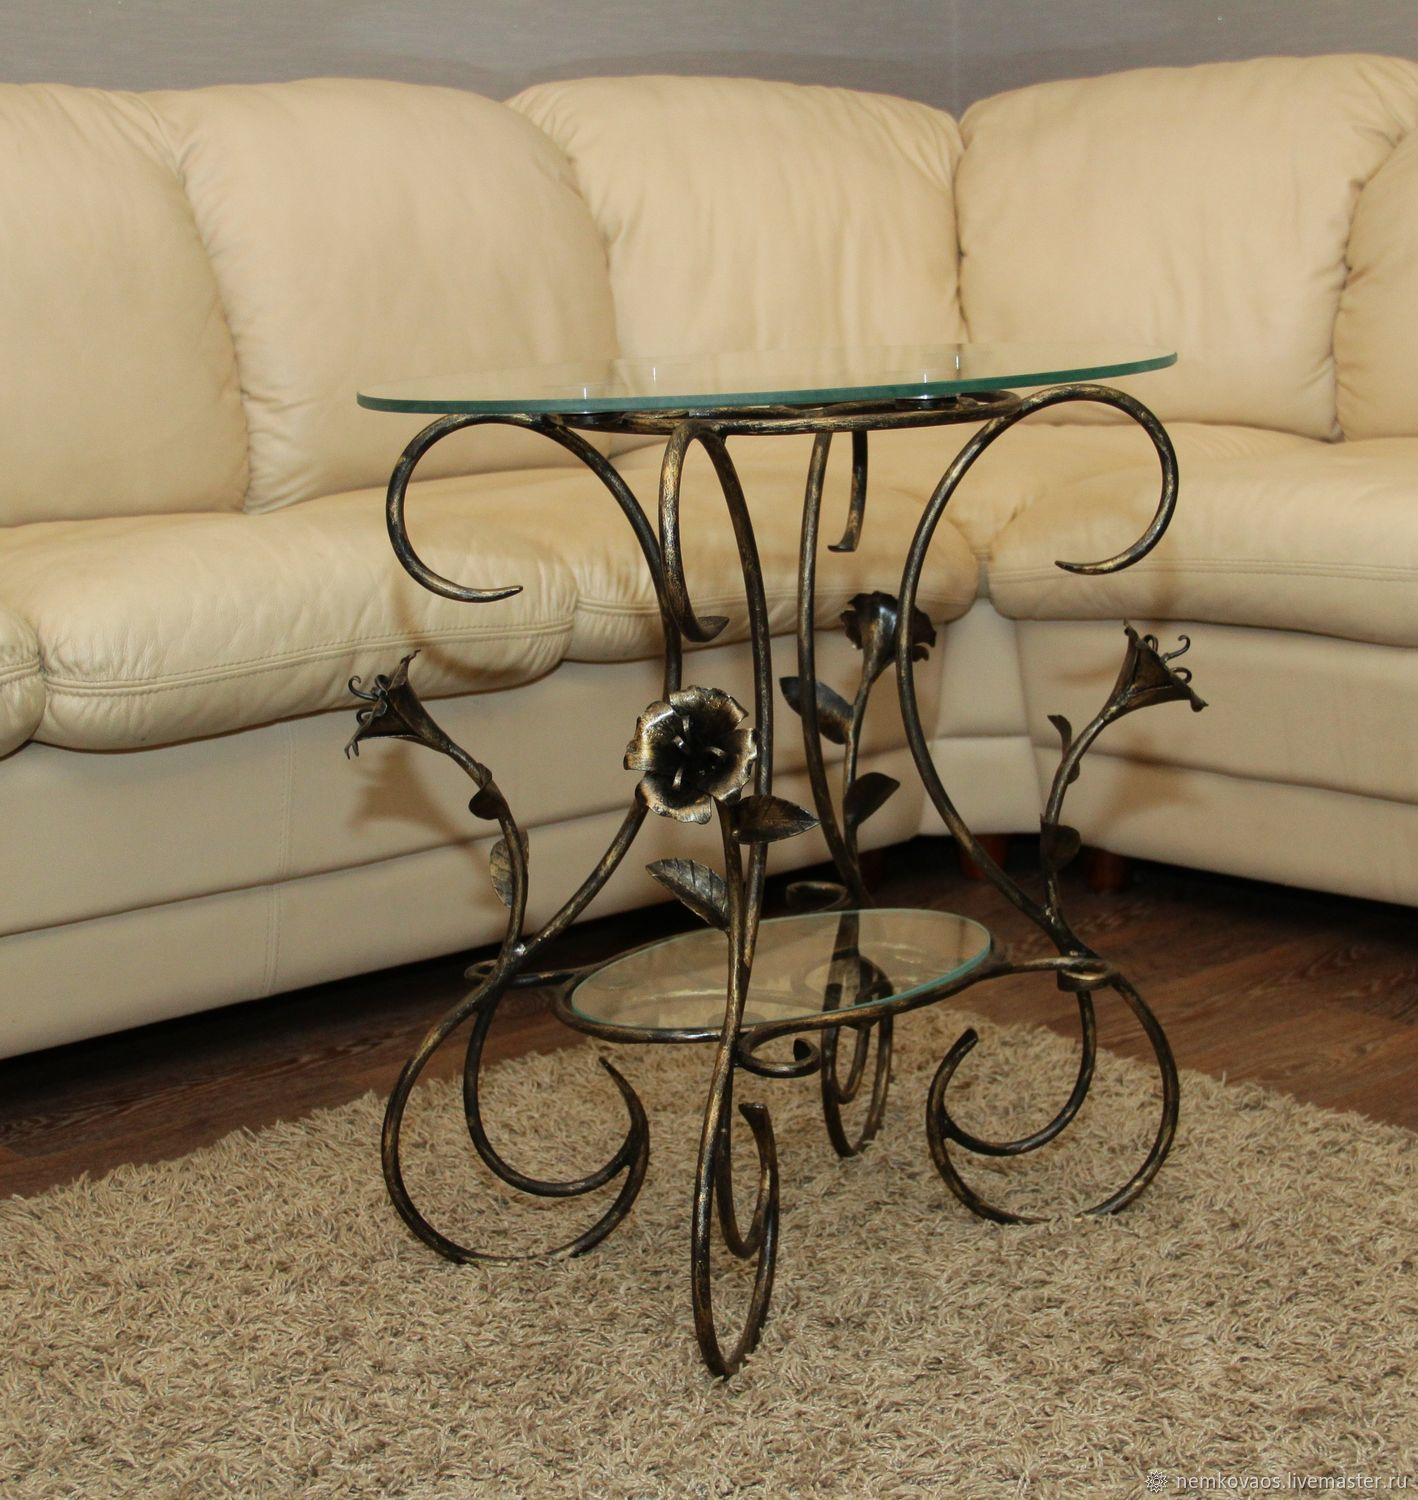 Wrought Iron Coffee Table (double Glass). Artistic Forging Nemkova.